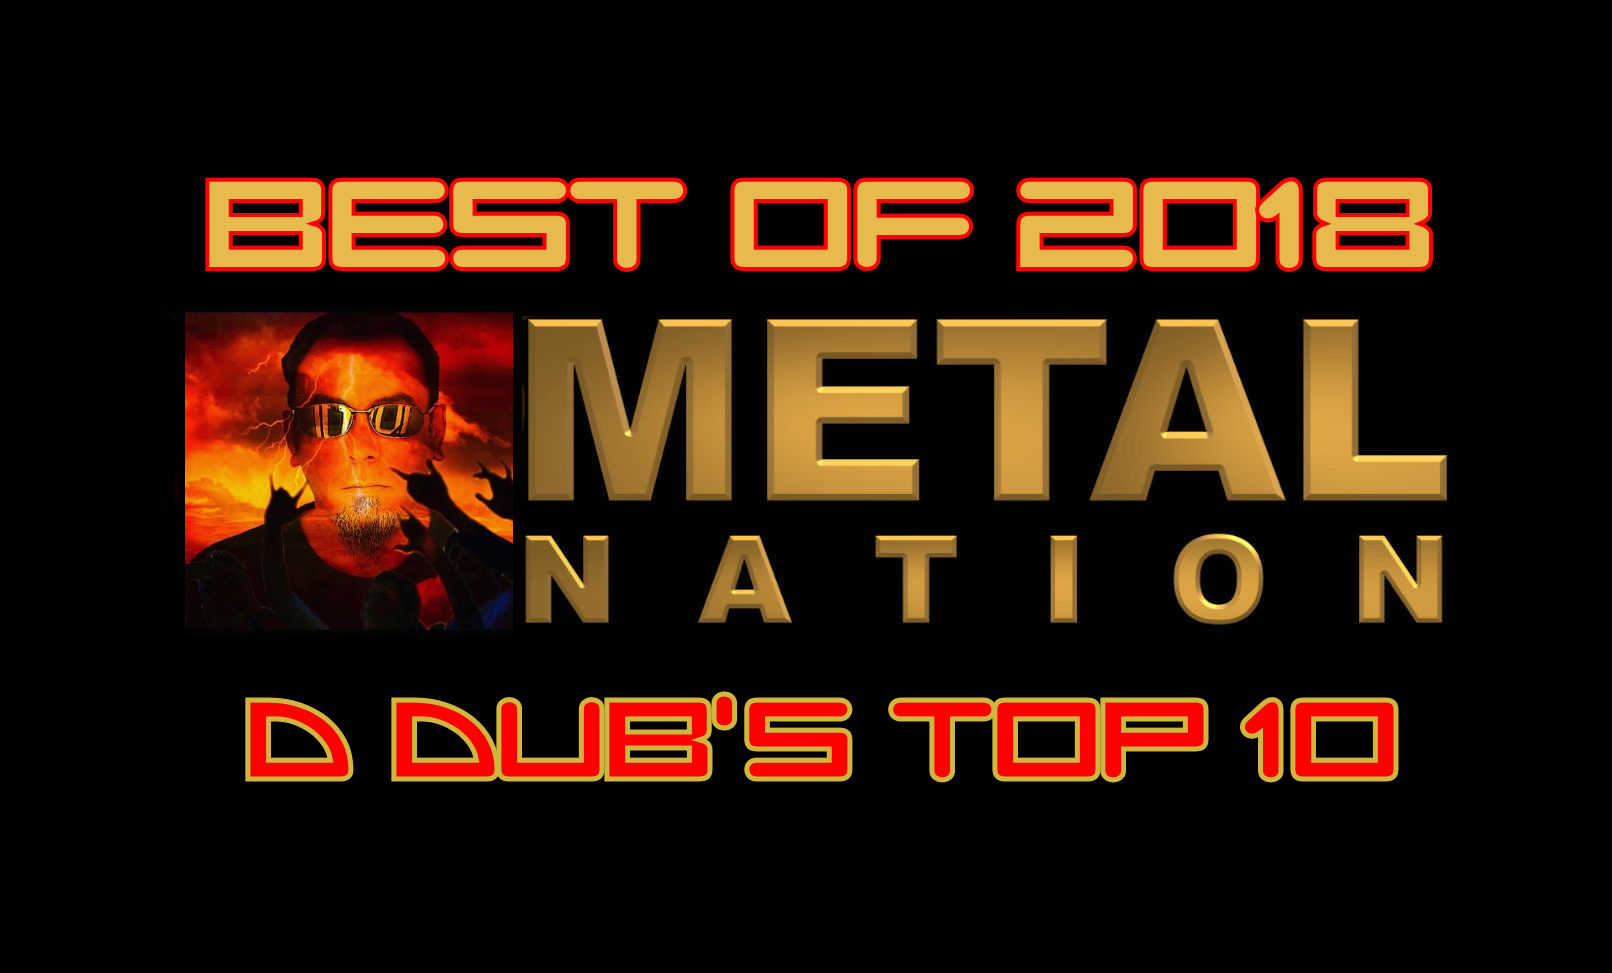 Metallia by Oh. #5 on Ddubs Top 10 Hard Rock and Metal Albums of 2018 on Metal Nation